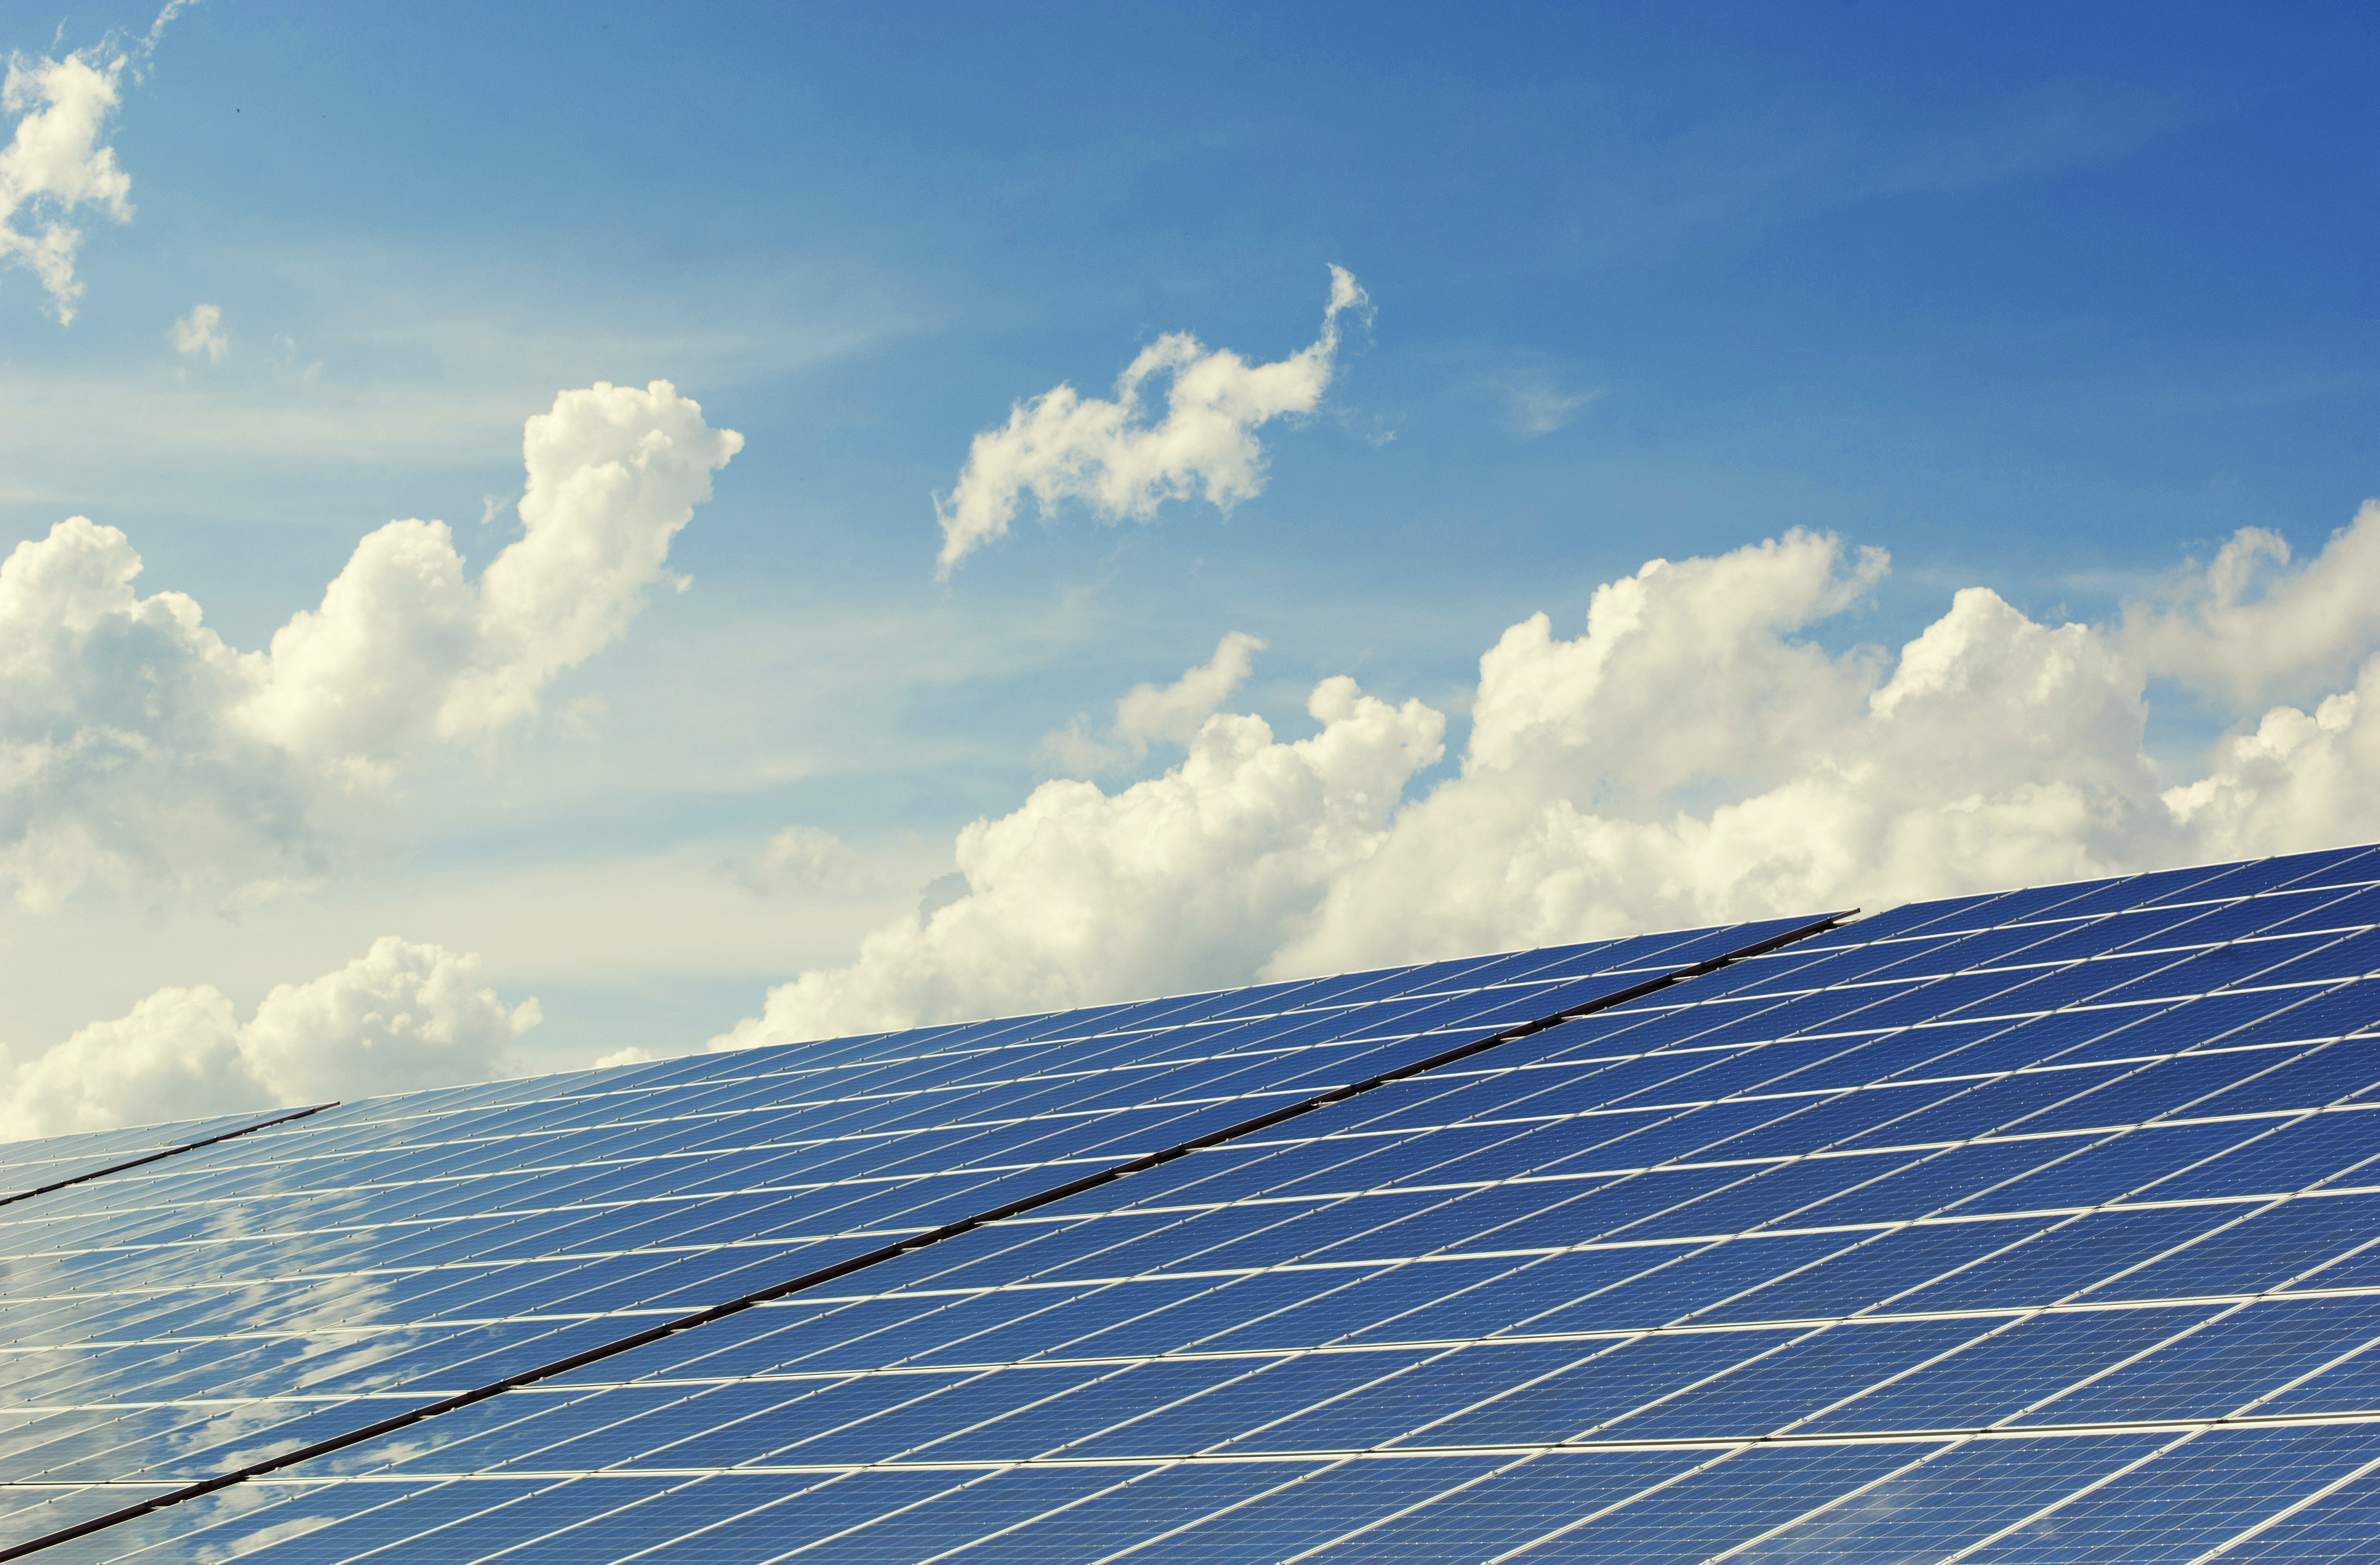 Technology in solar power transforms Indian energy sector's picture